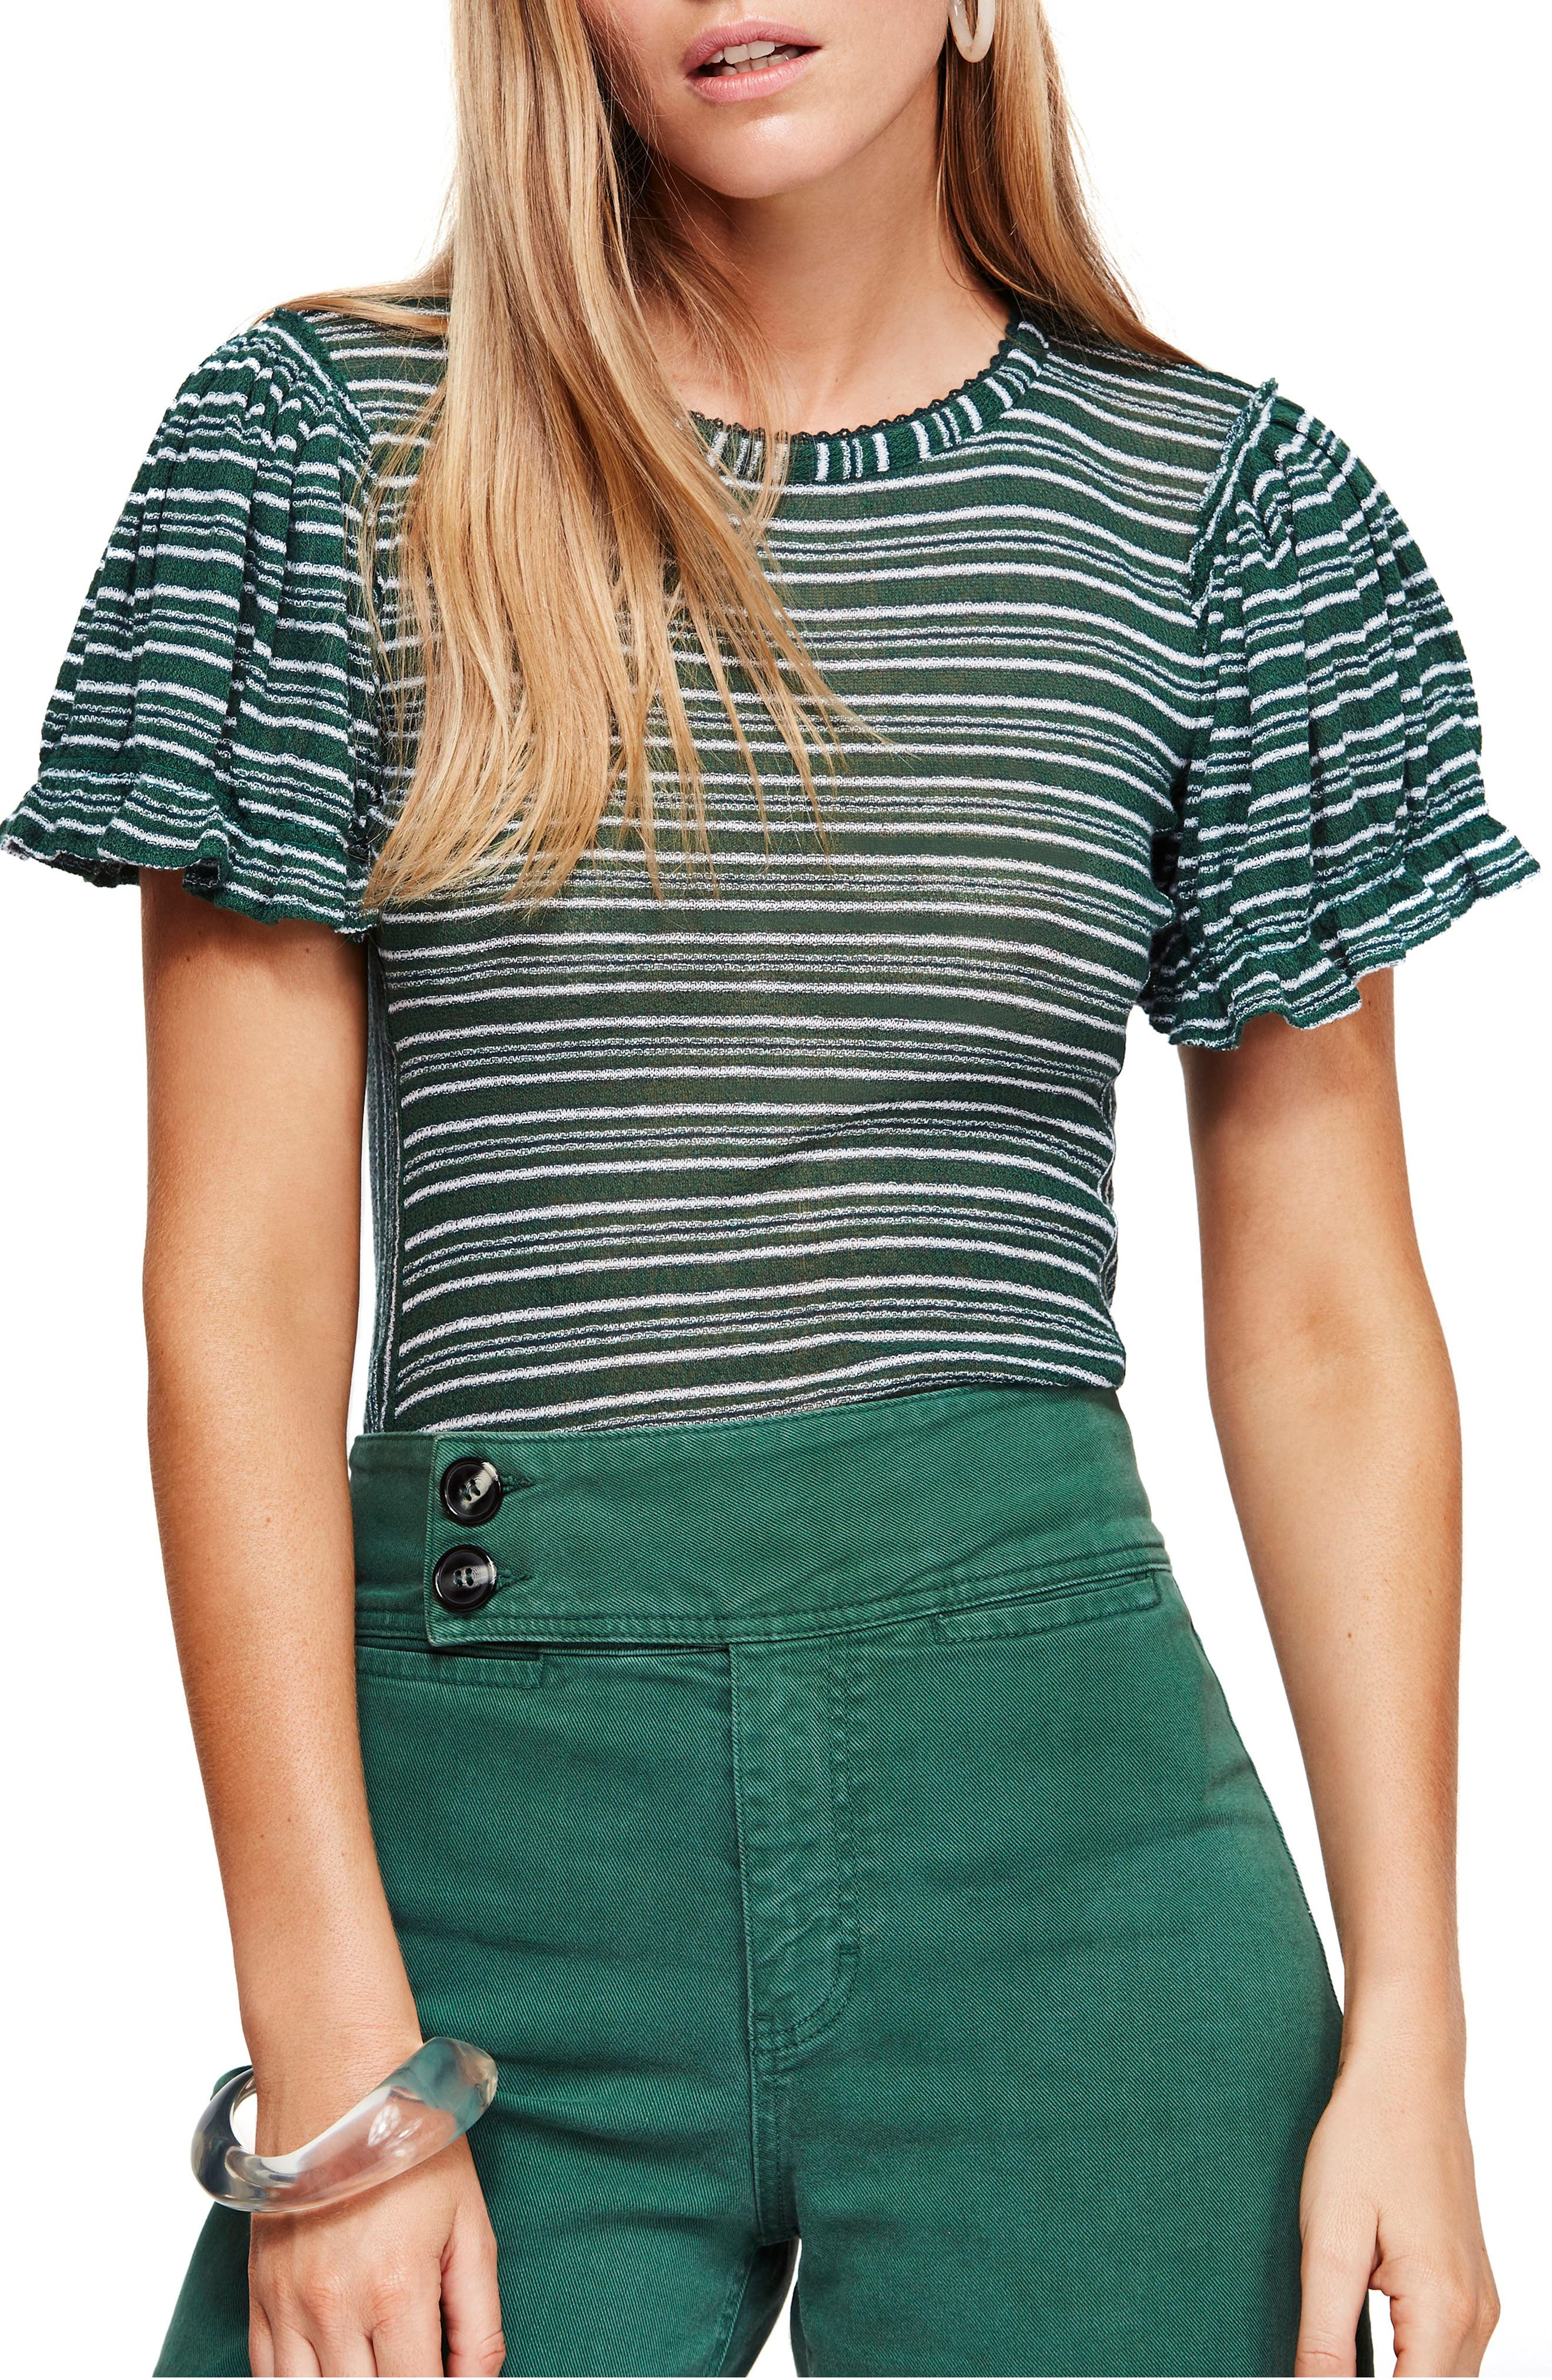 Free People Take One For The Team Tee, Blue/green